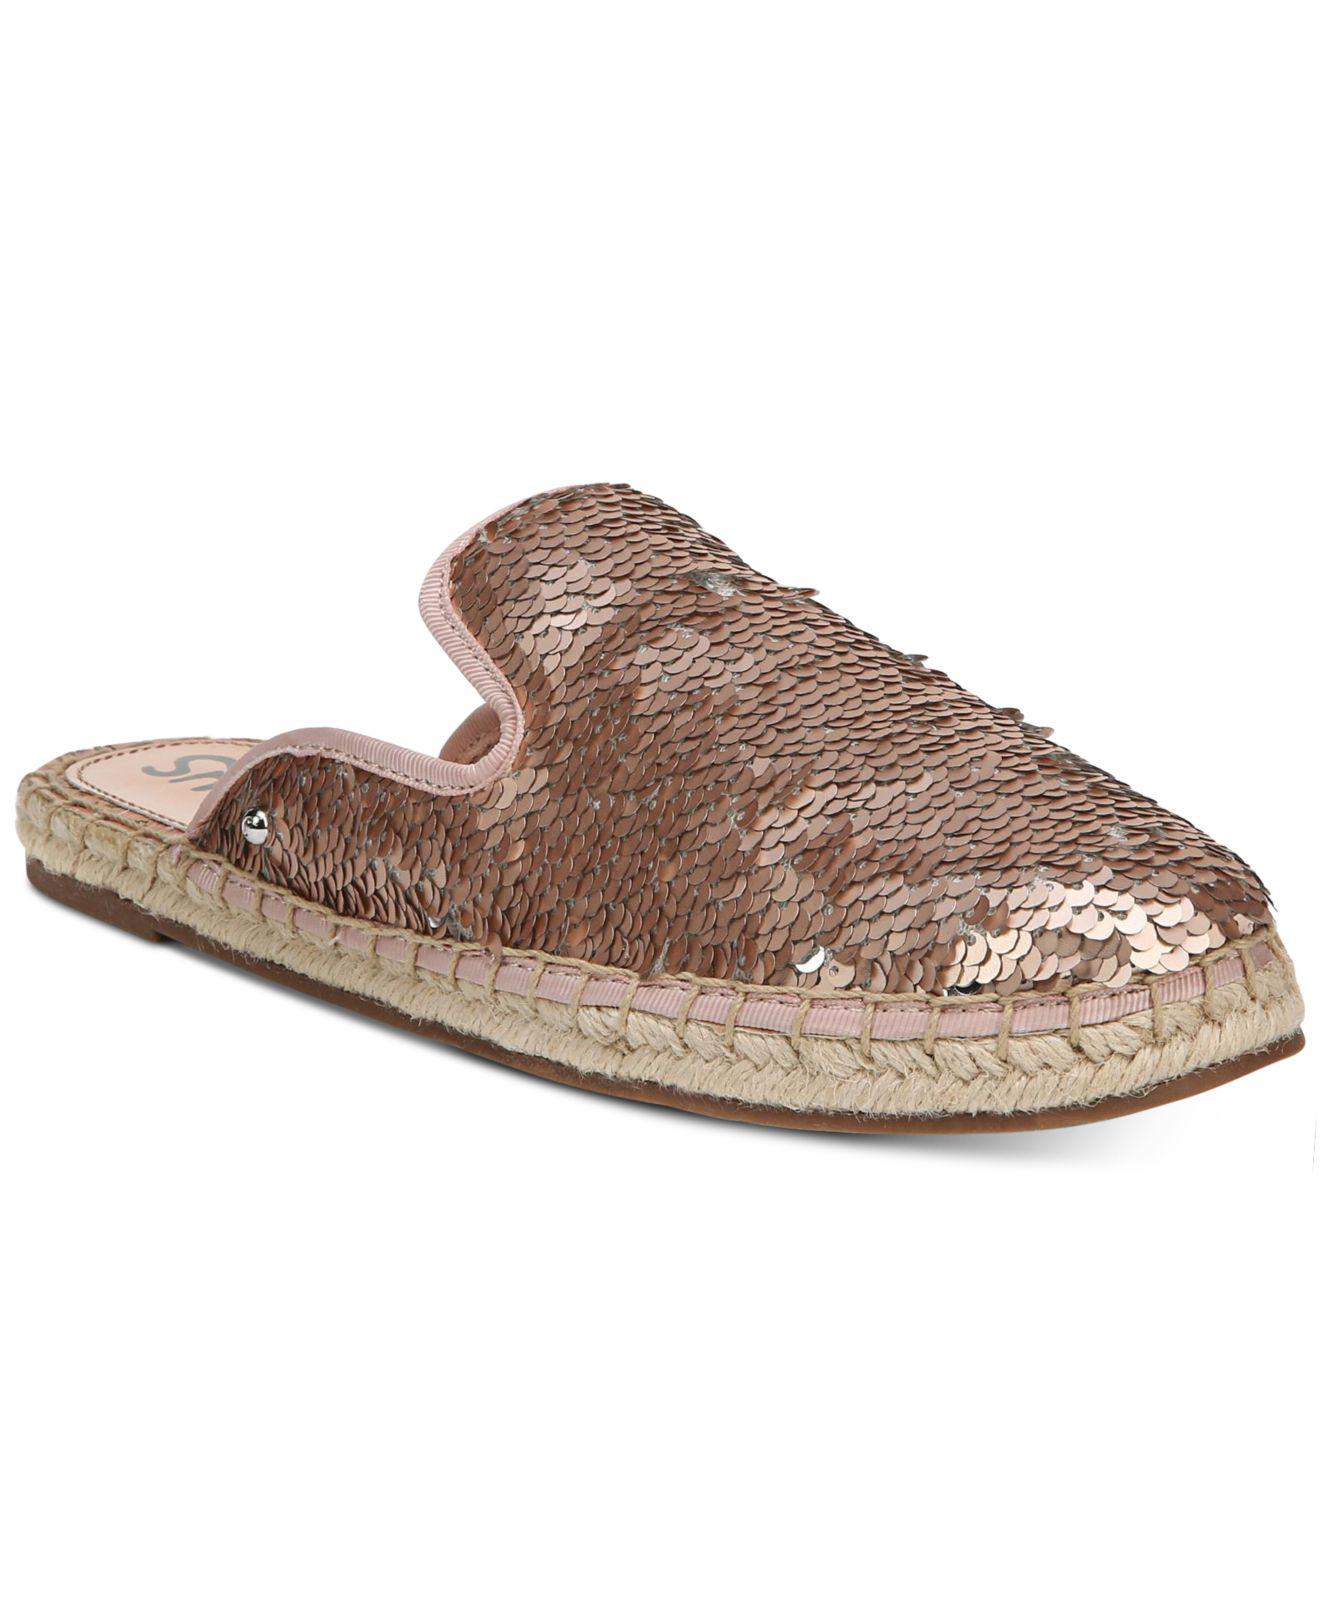 Circus by Sam Edelman Leanne ... Women's Espadrille Mules footlocker outlet manchester great sale wiki free shipping wide range of cheap sale find great RUONW